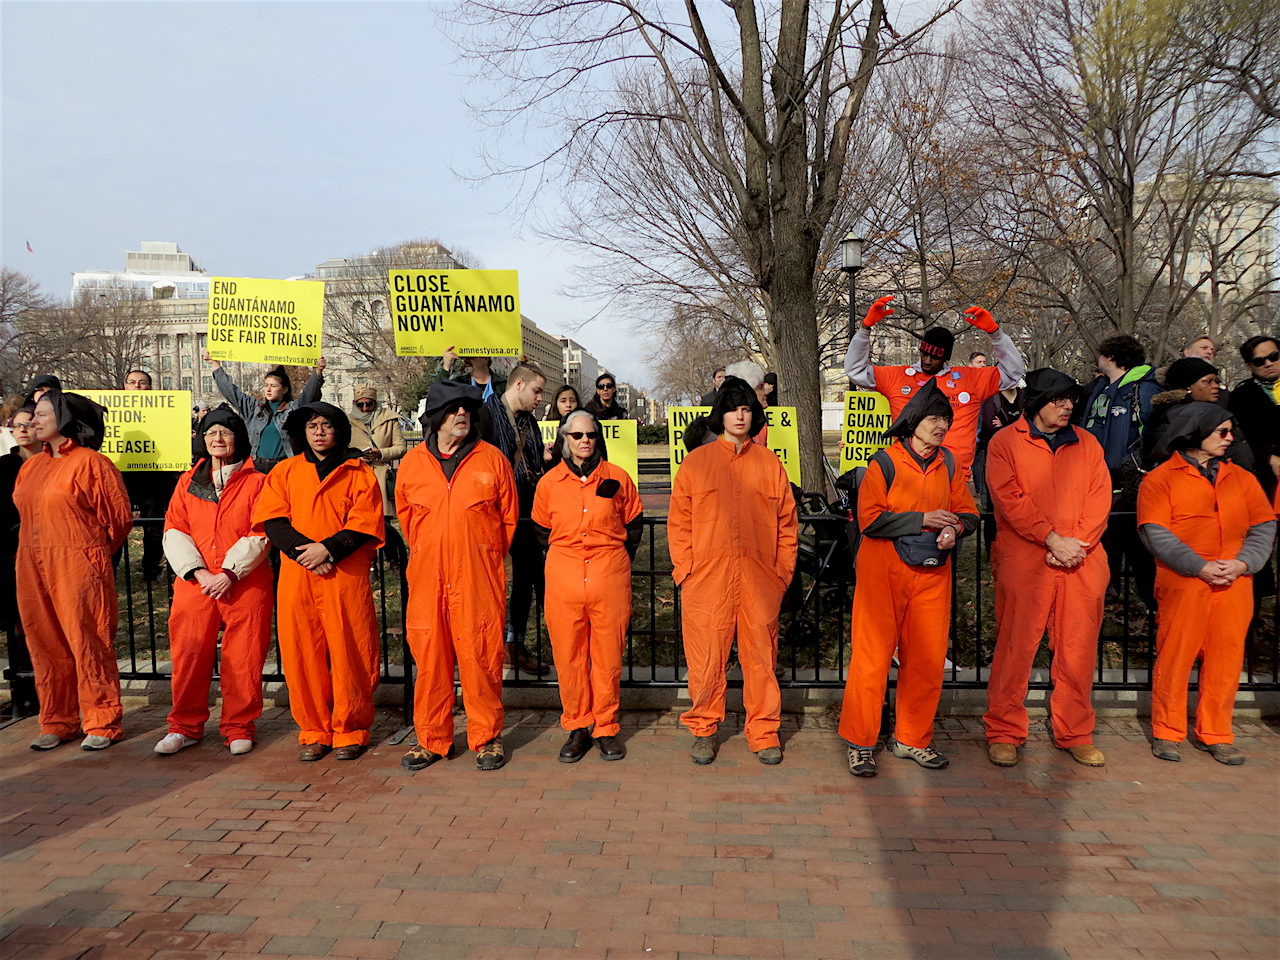 Campaigners calling for the closure of Guantanamo at the annual protest outside the White House on January 11, 2018, the 16th anniversary of the prison's opening.